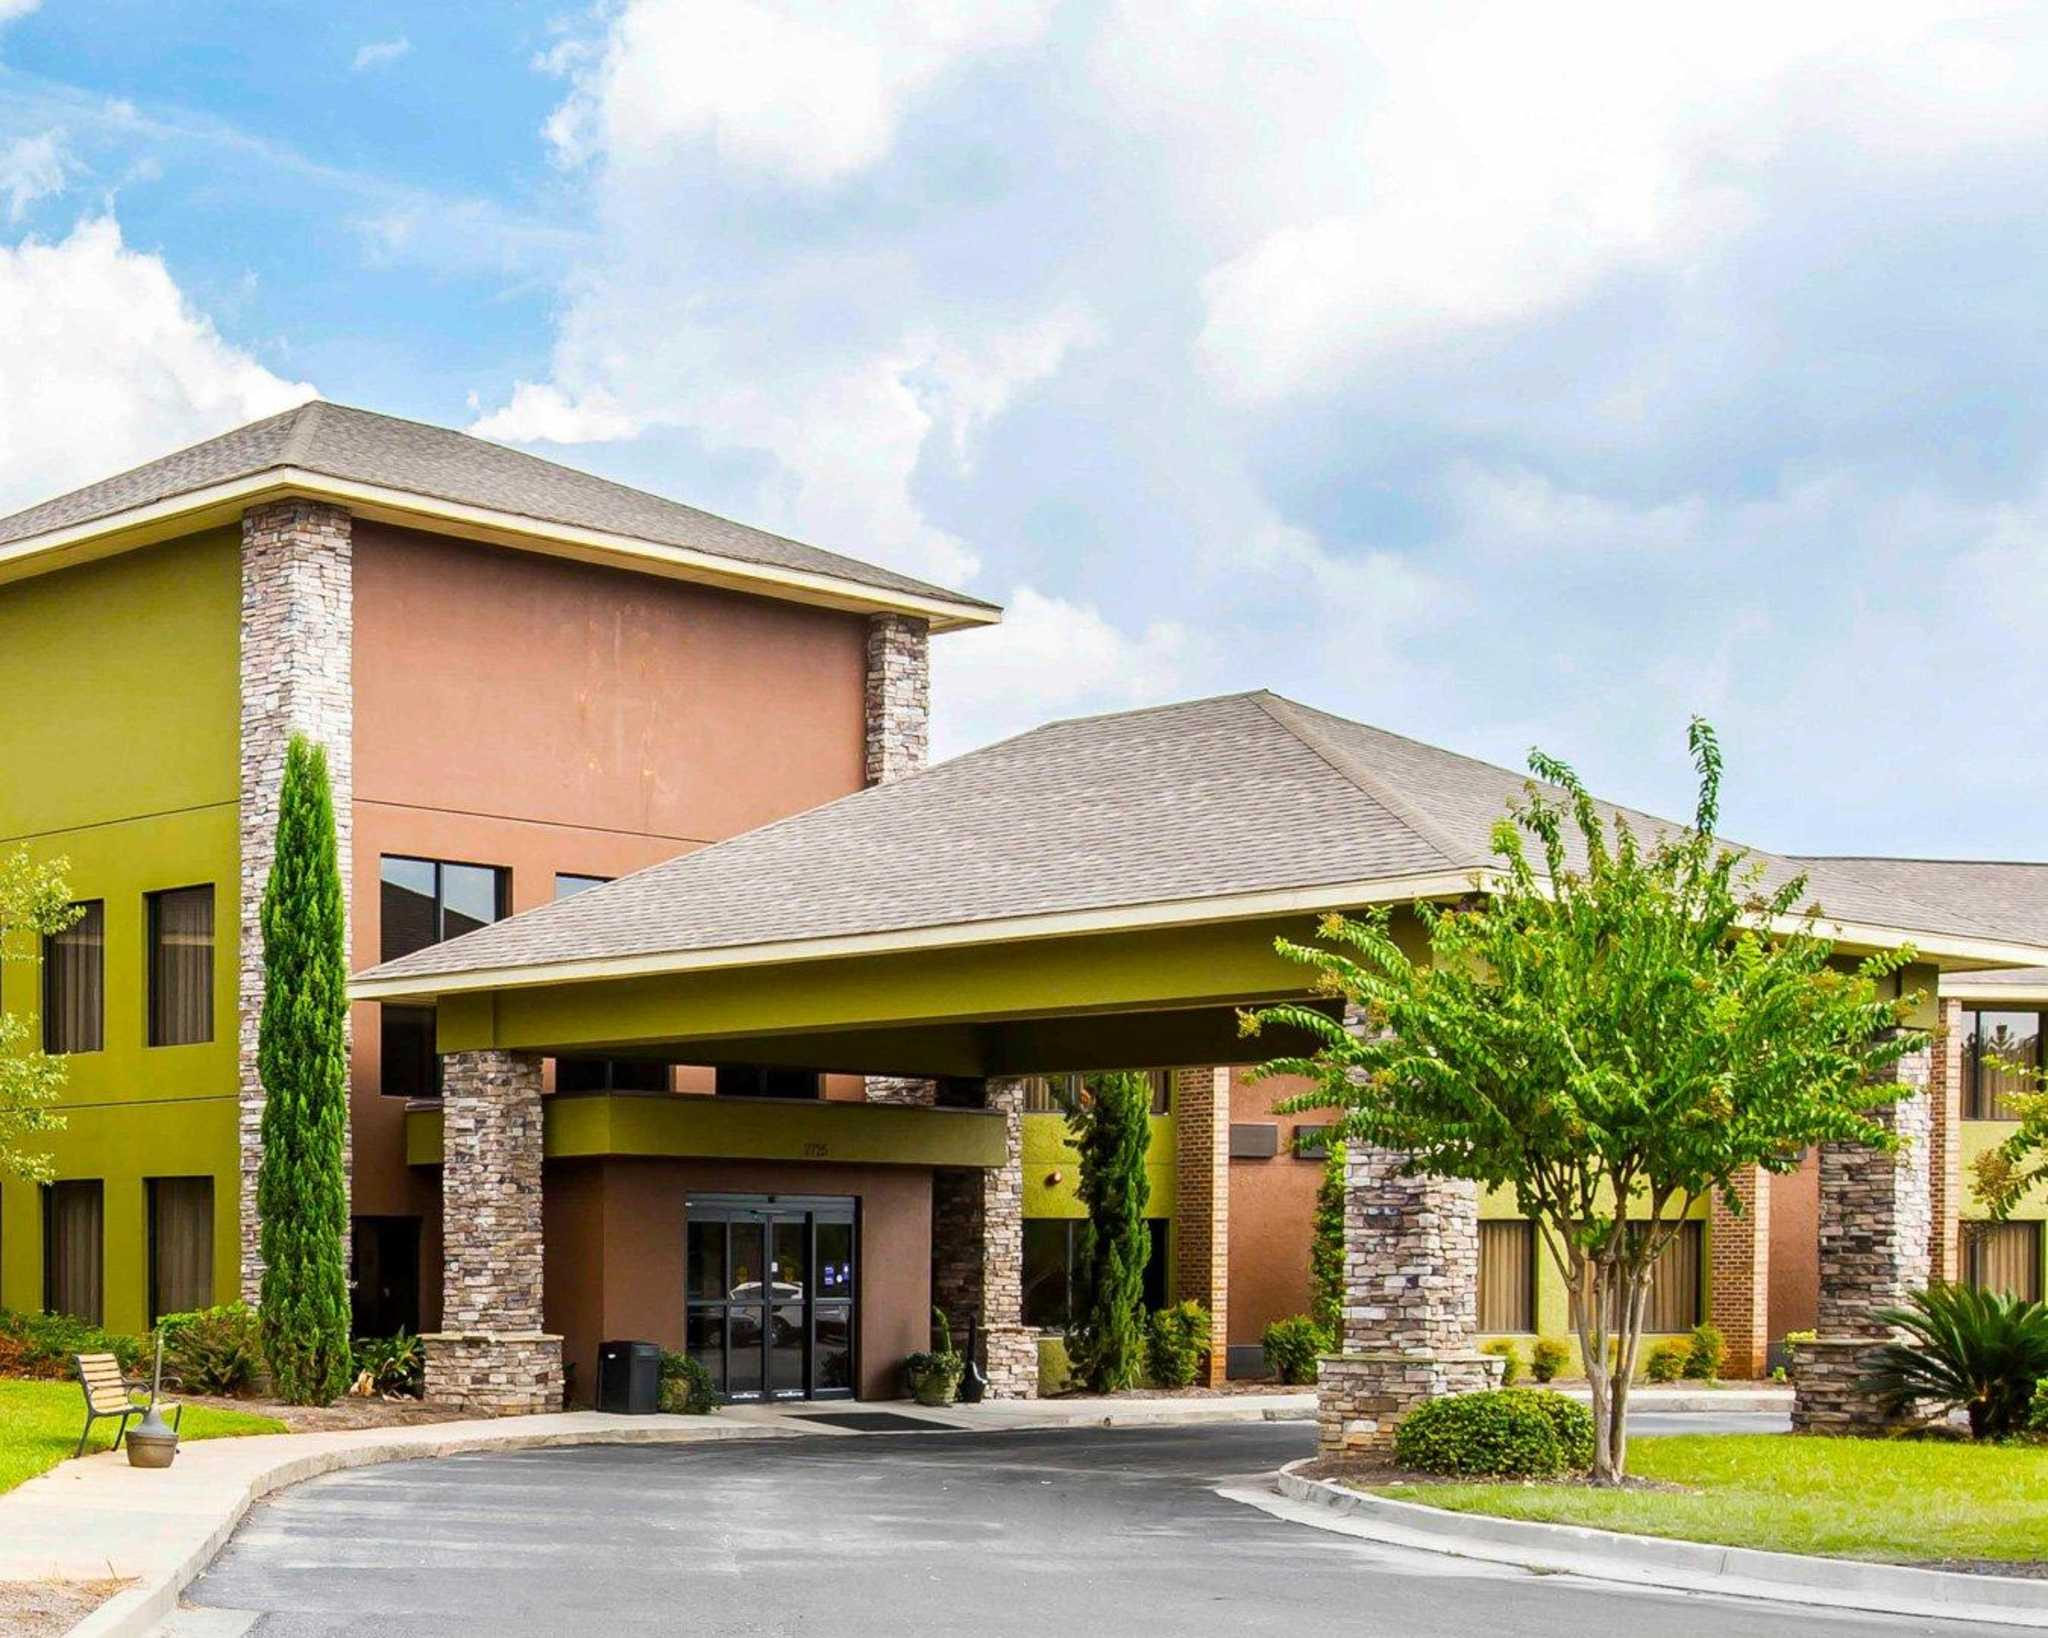 Hotels And Motels In Warner Robins Ga